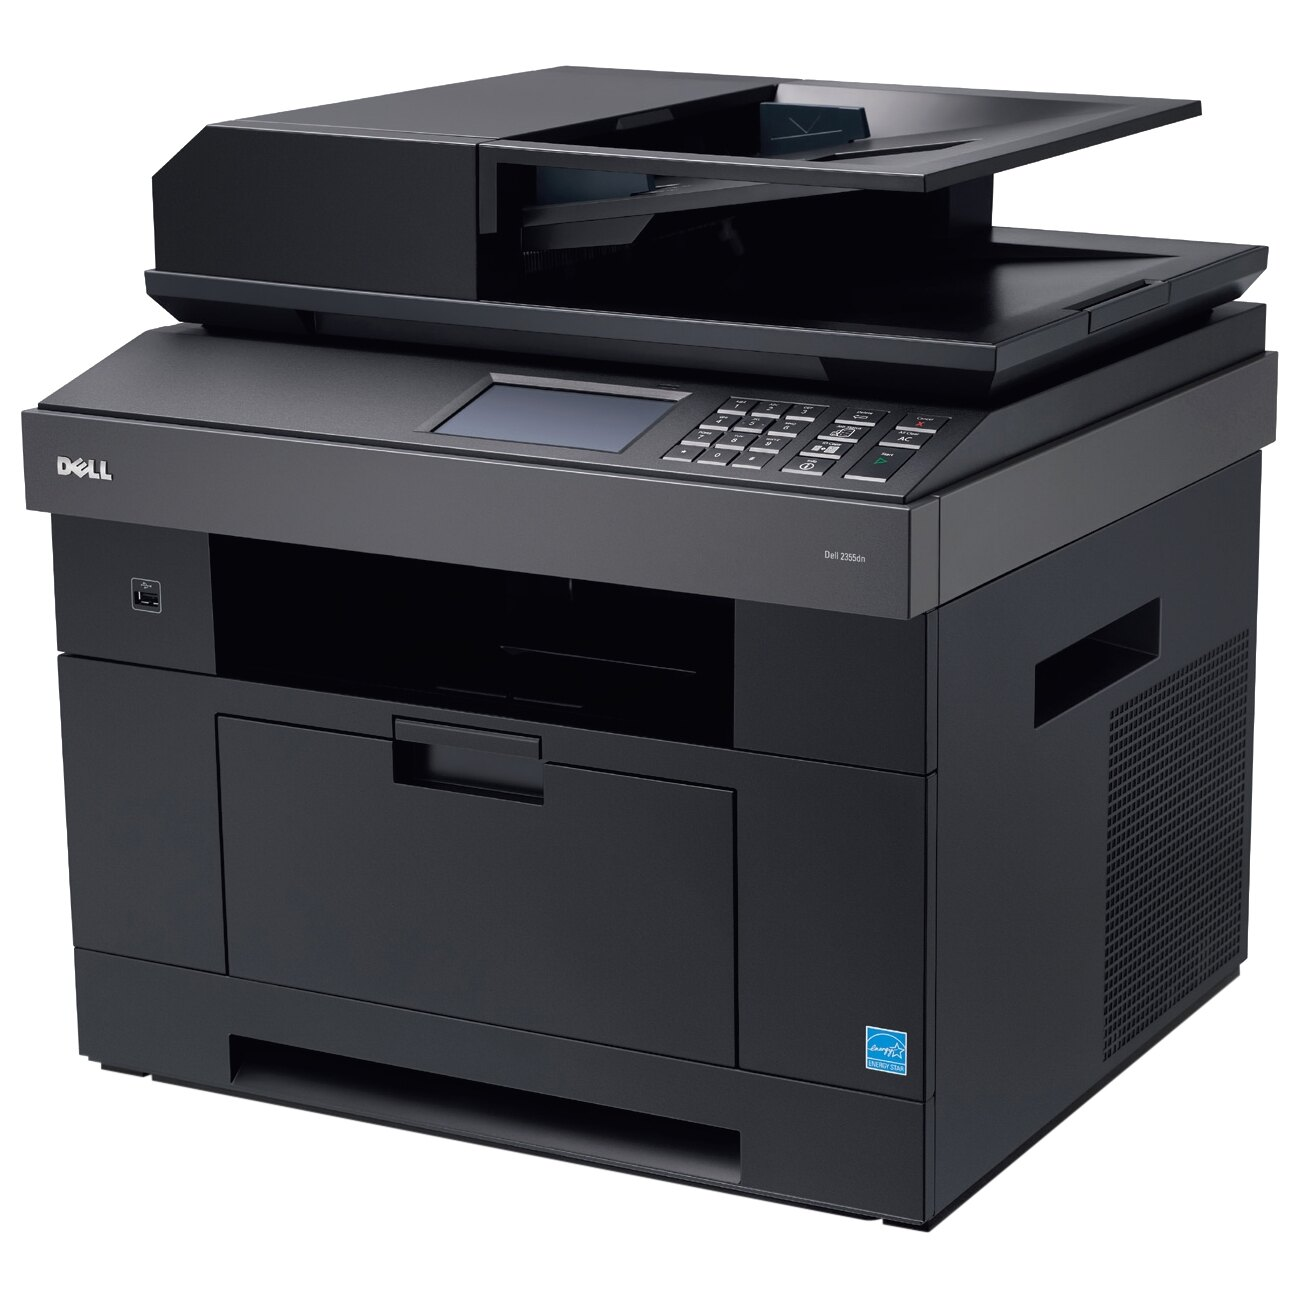 Refurbished Dell 2355DN Multifunction Printer - Monochrome - 35 ppm Mono - 1200 dpi - Printer, Copier, Scanner, Fax - Fast Ethernet - USB: Yes 0